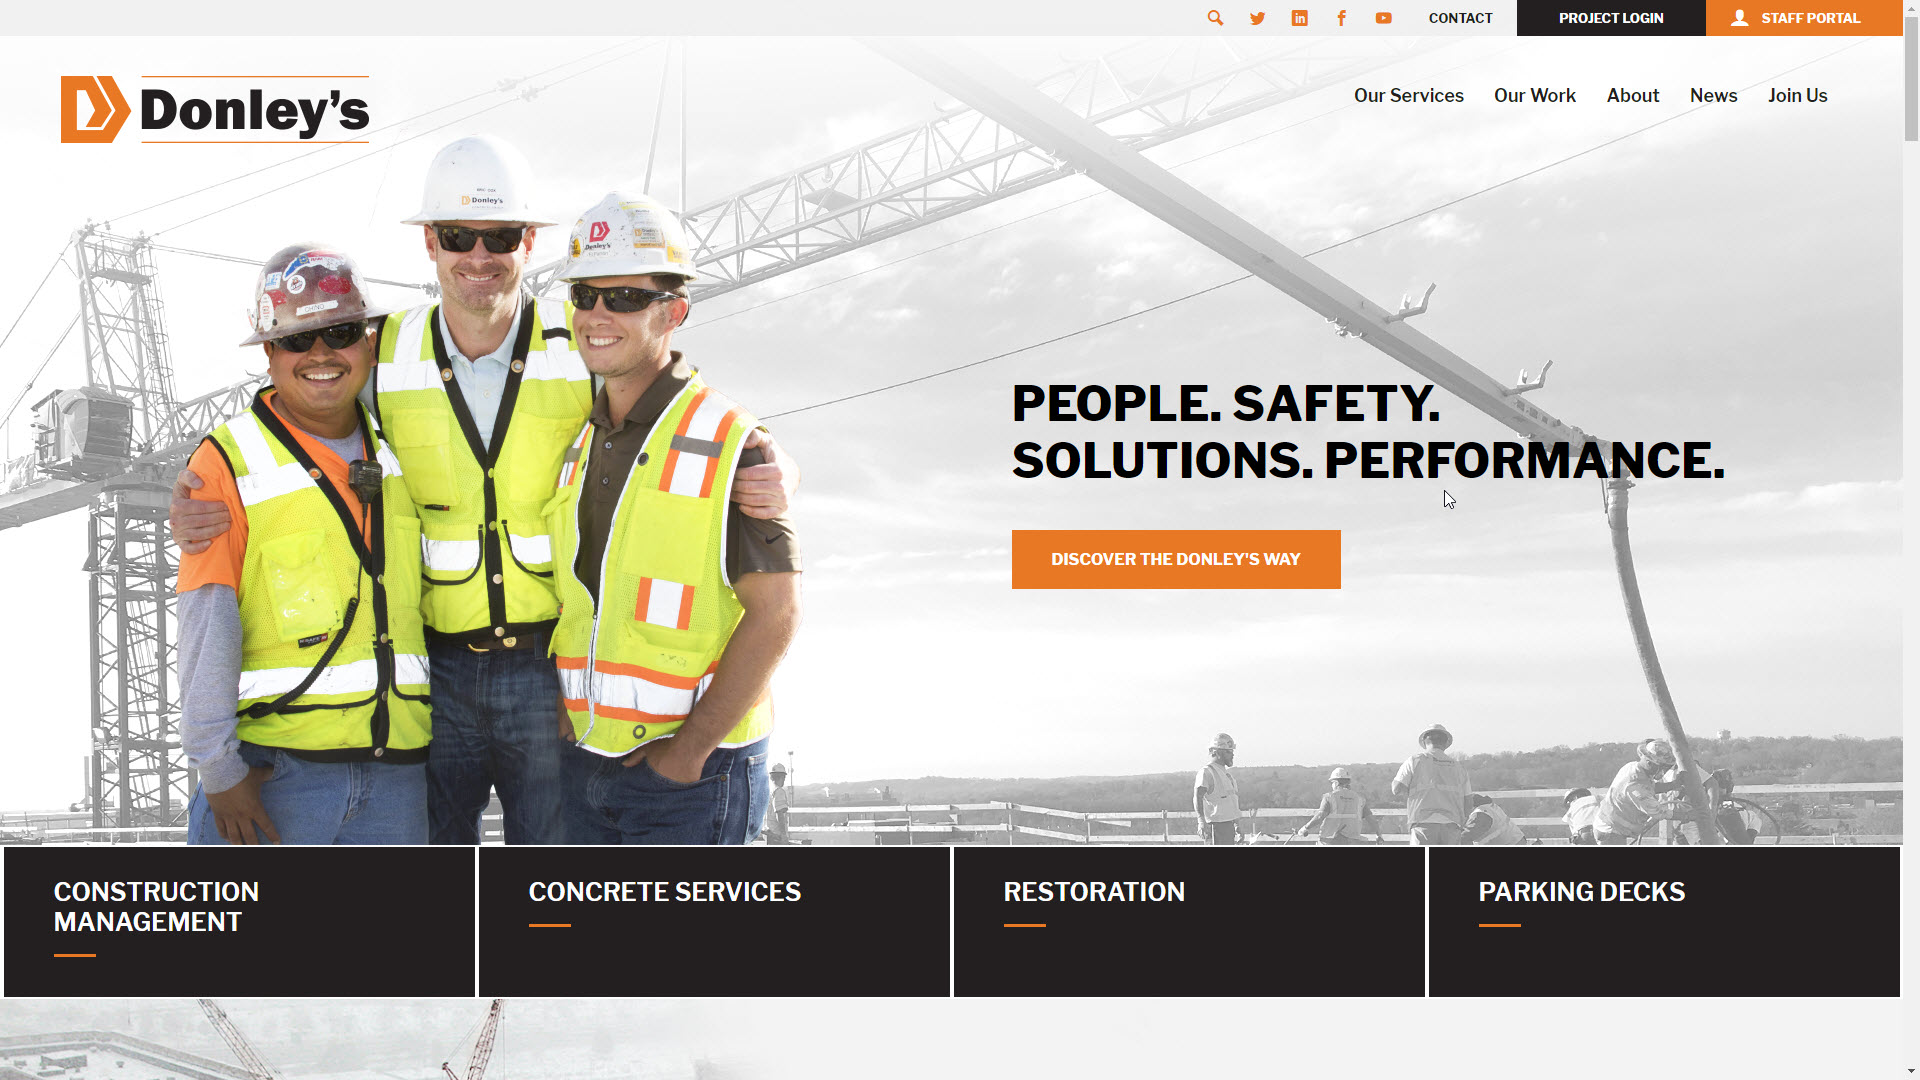 Donley's | Cleveland Construction Company